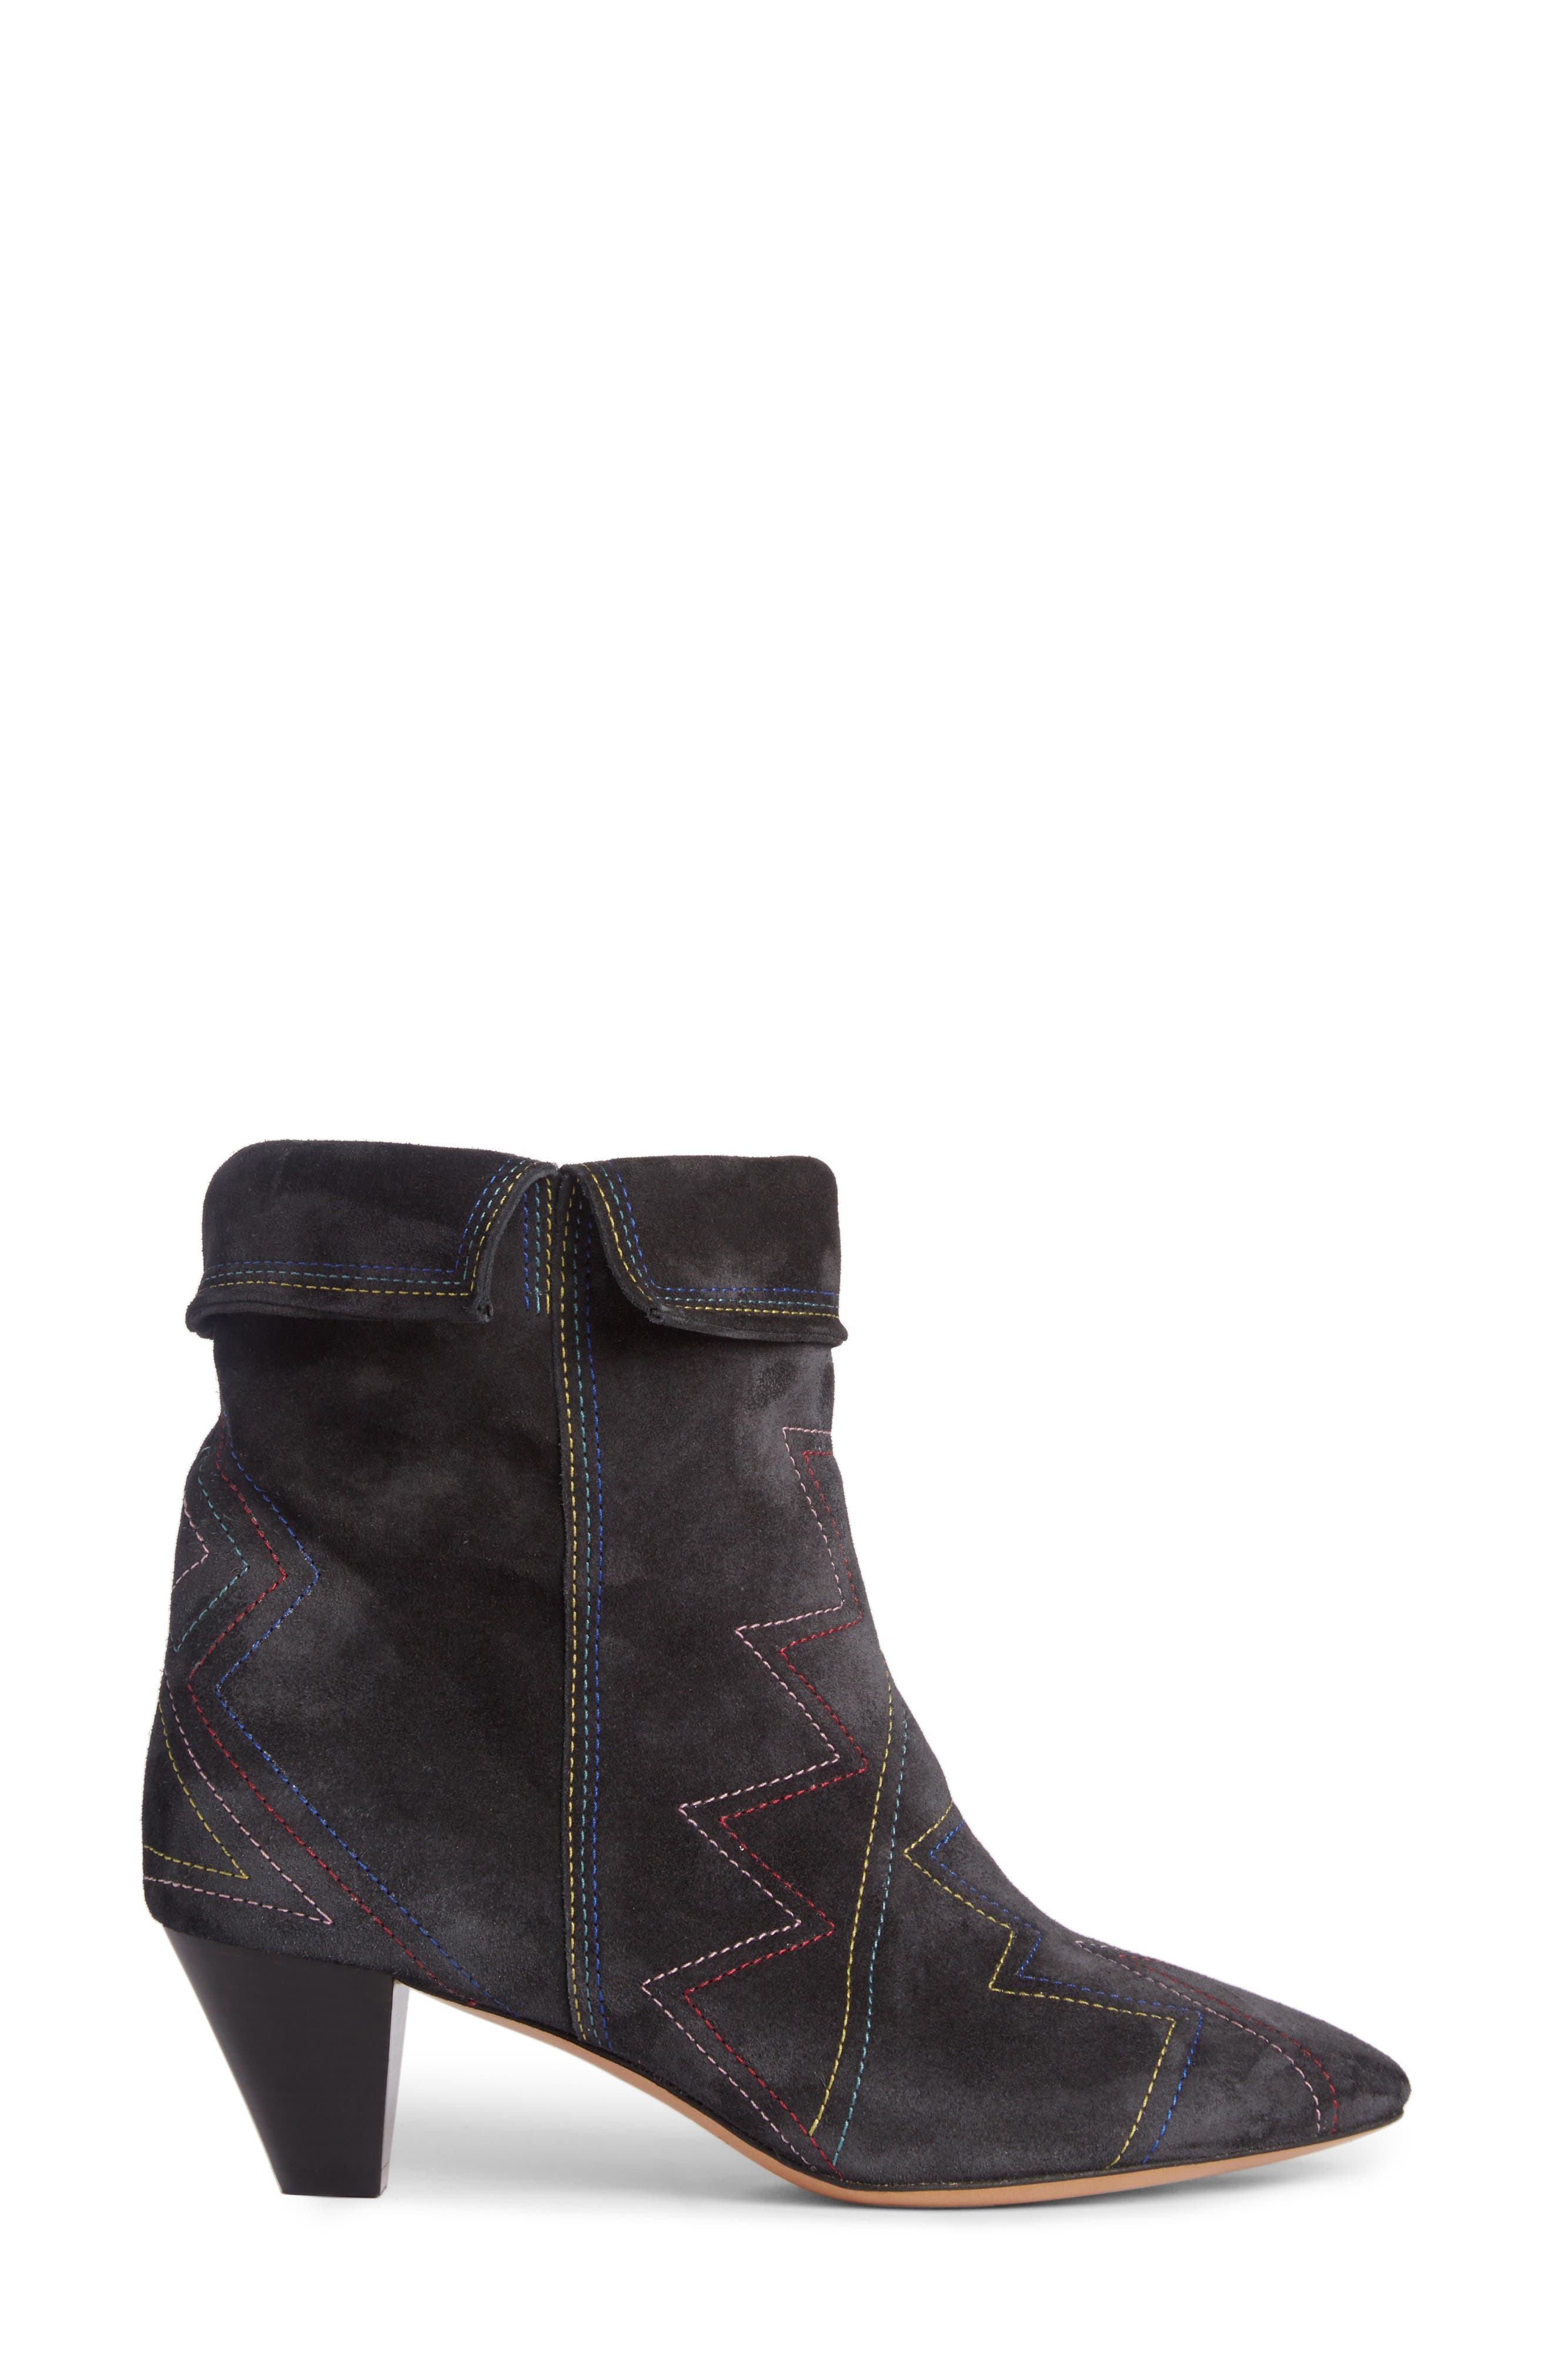 Dyna Topstitched Boot,                             Alternate thumbnail 4, color,                             Faded Black